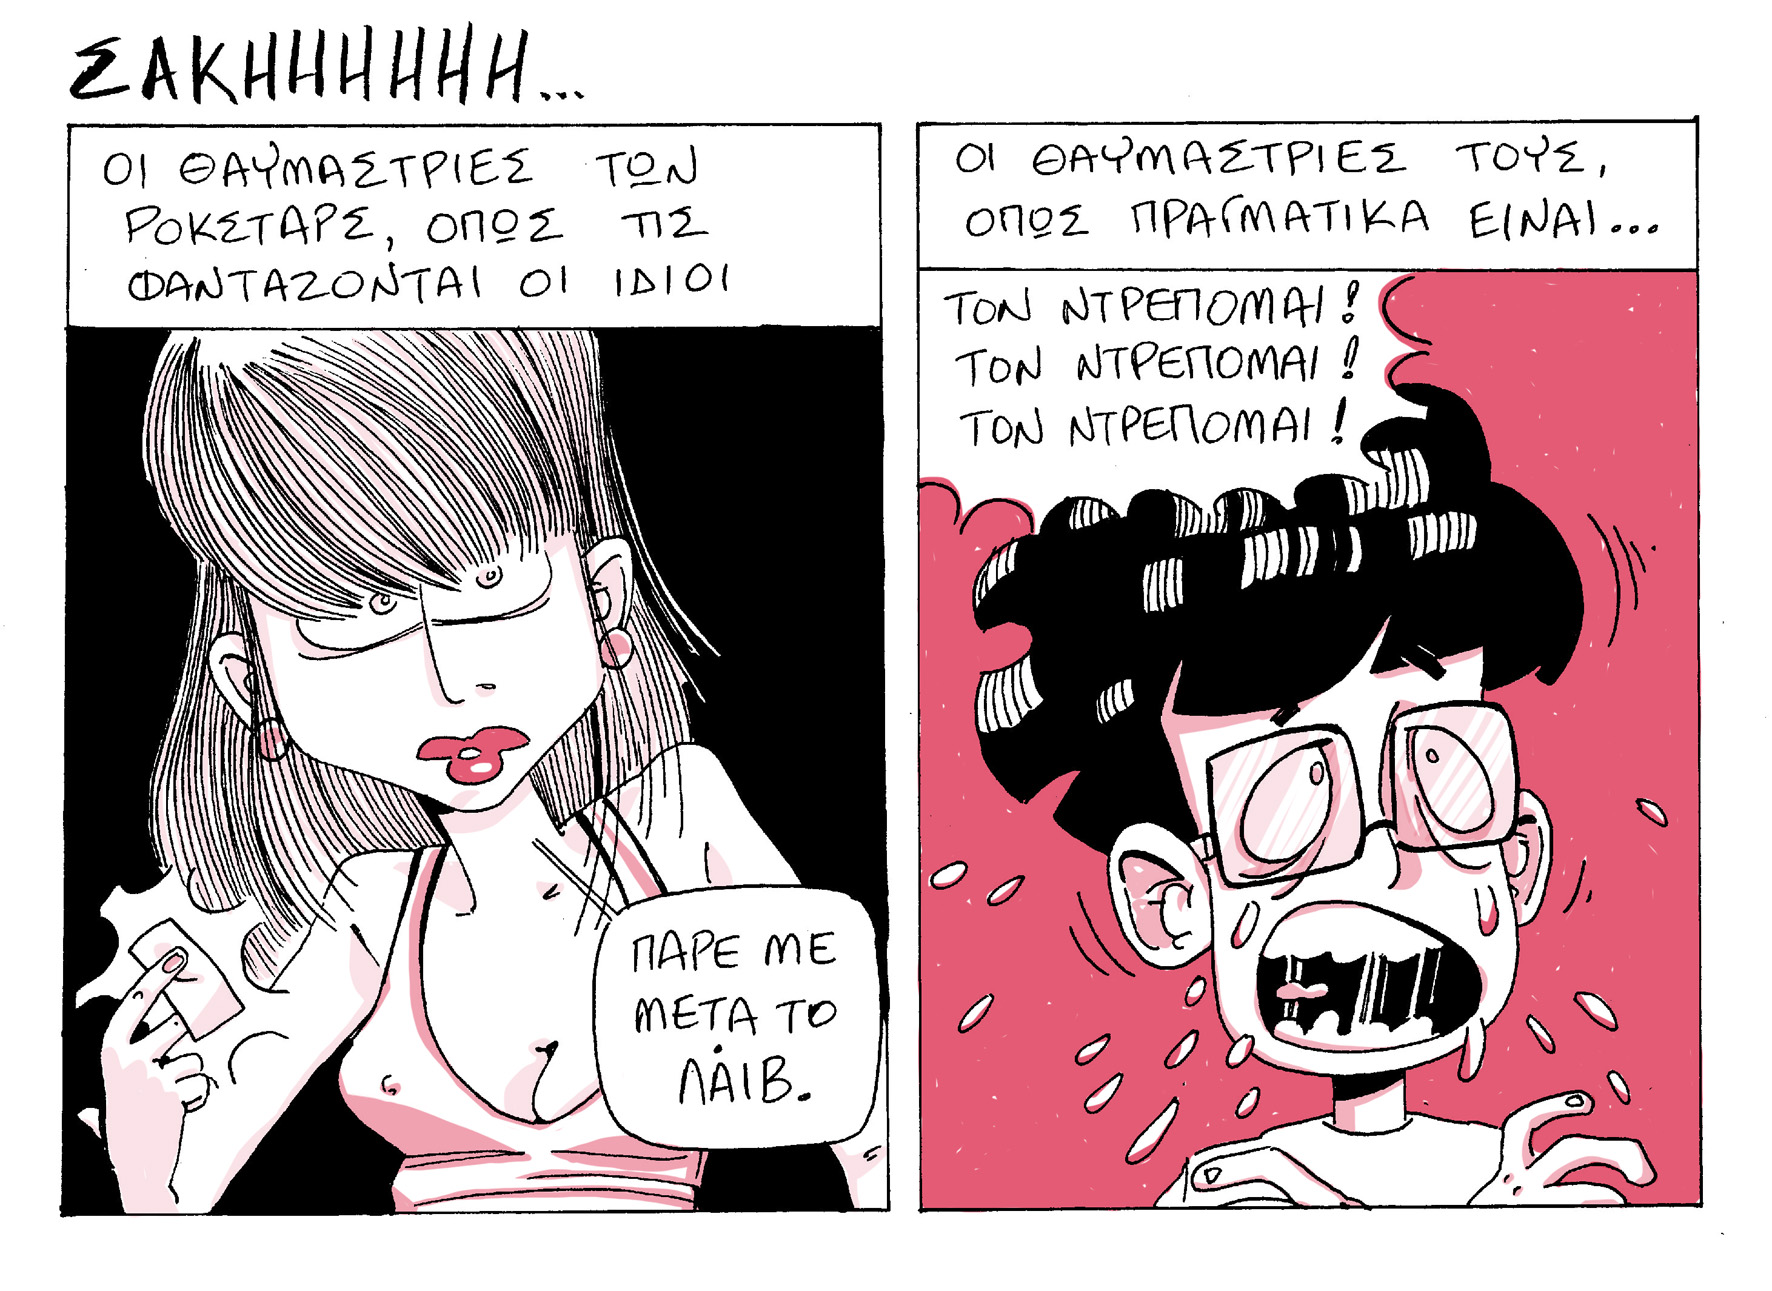 mfs socomic009asm (1)